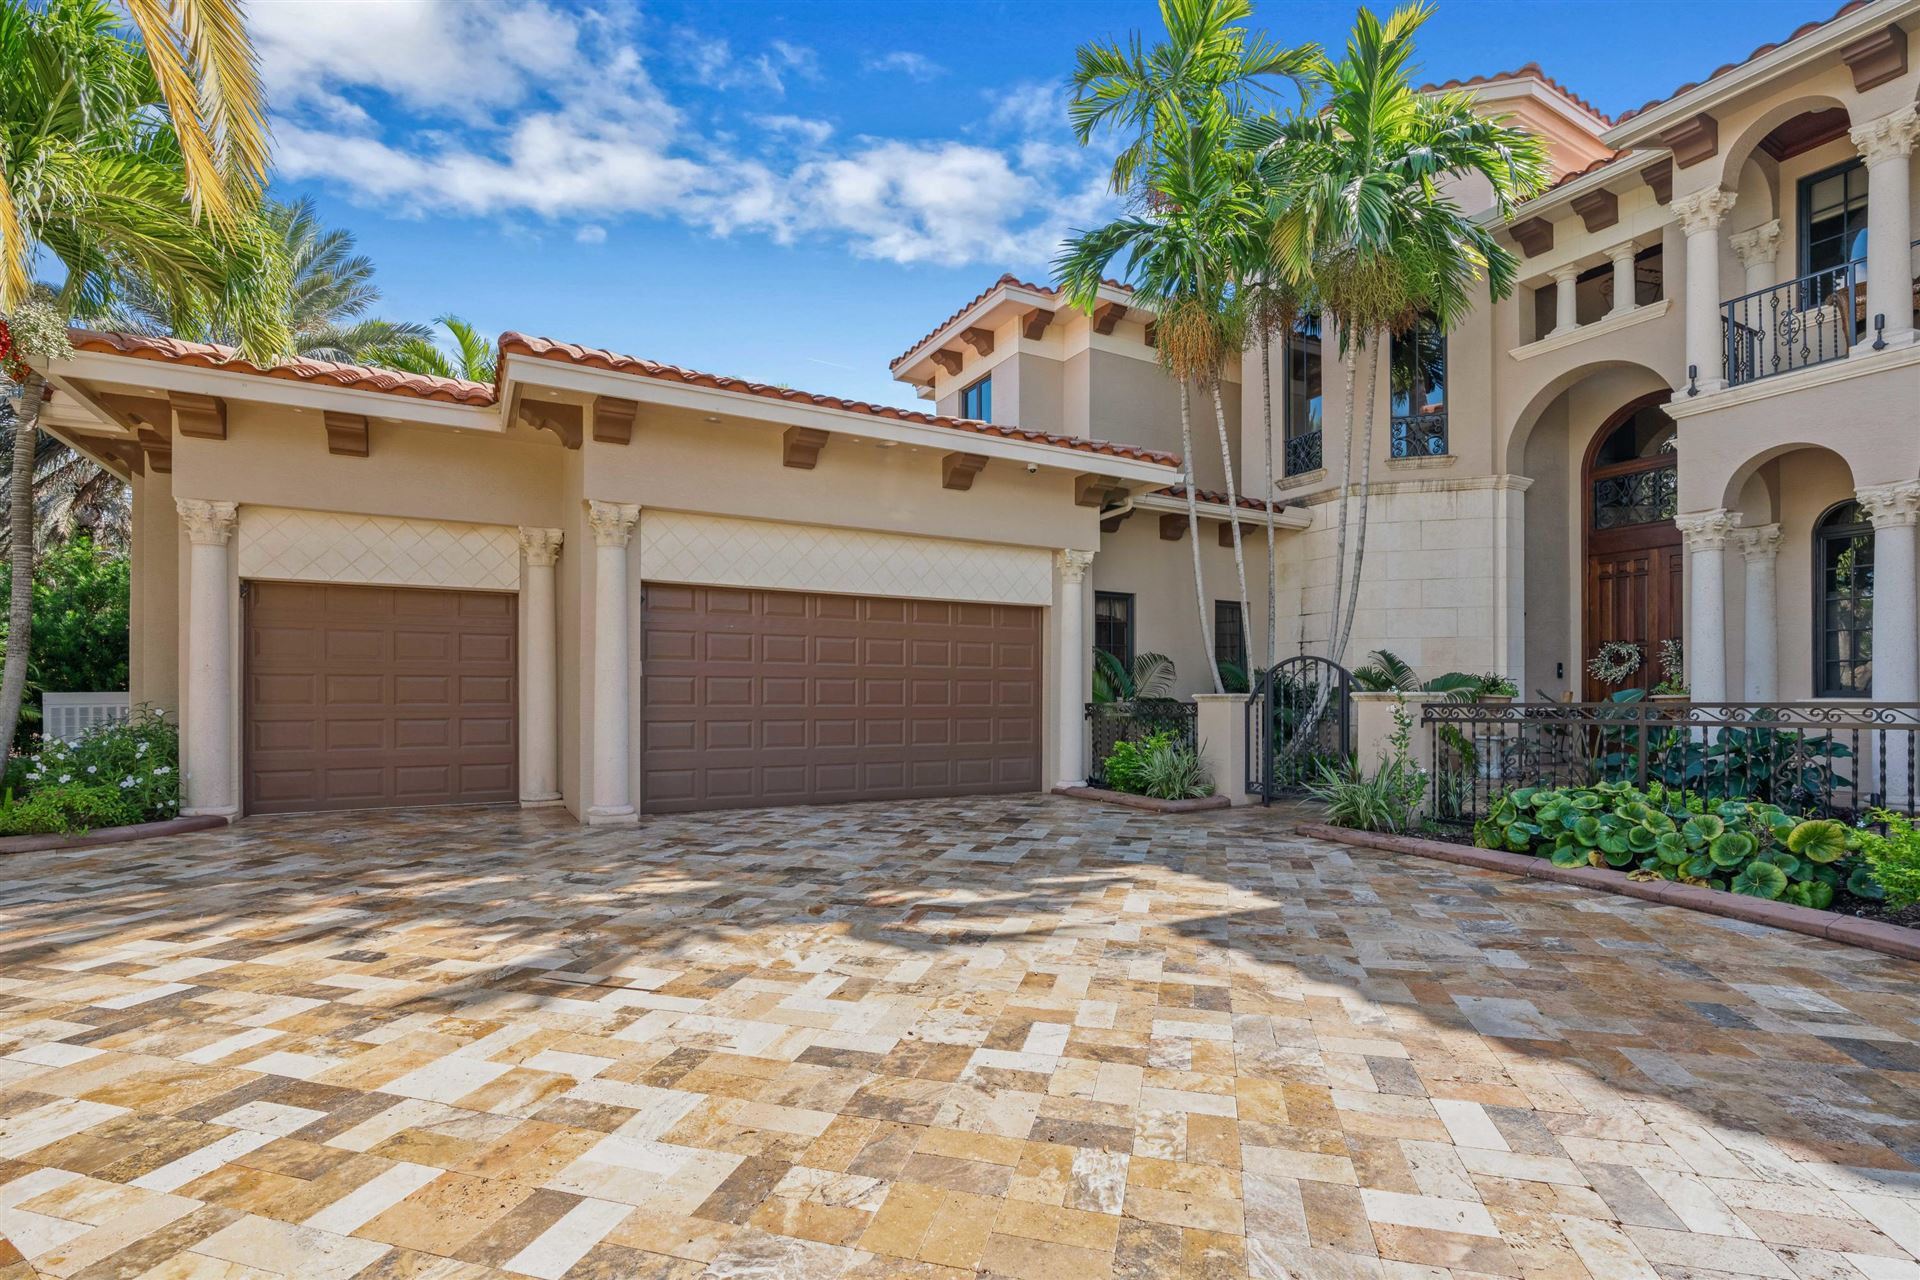 Photo of 129 Commodore Drive, Jupiter, FL 33477 (MLS # RX-10667321)